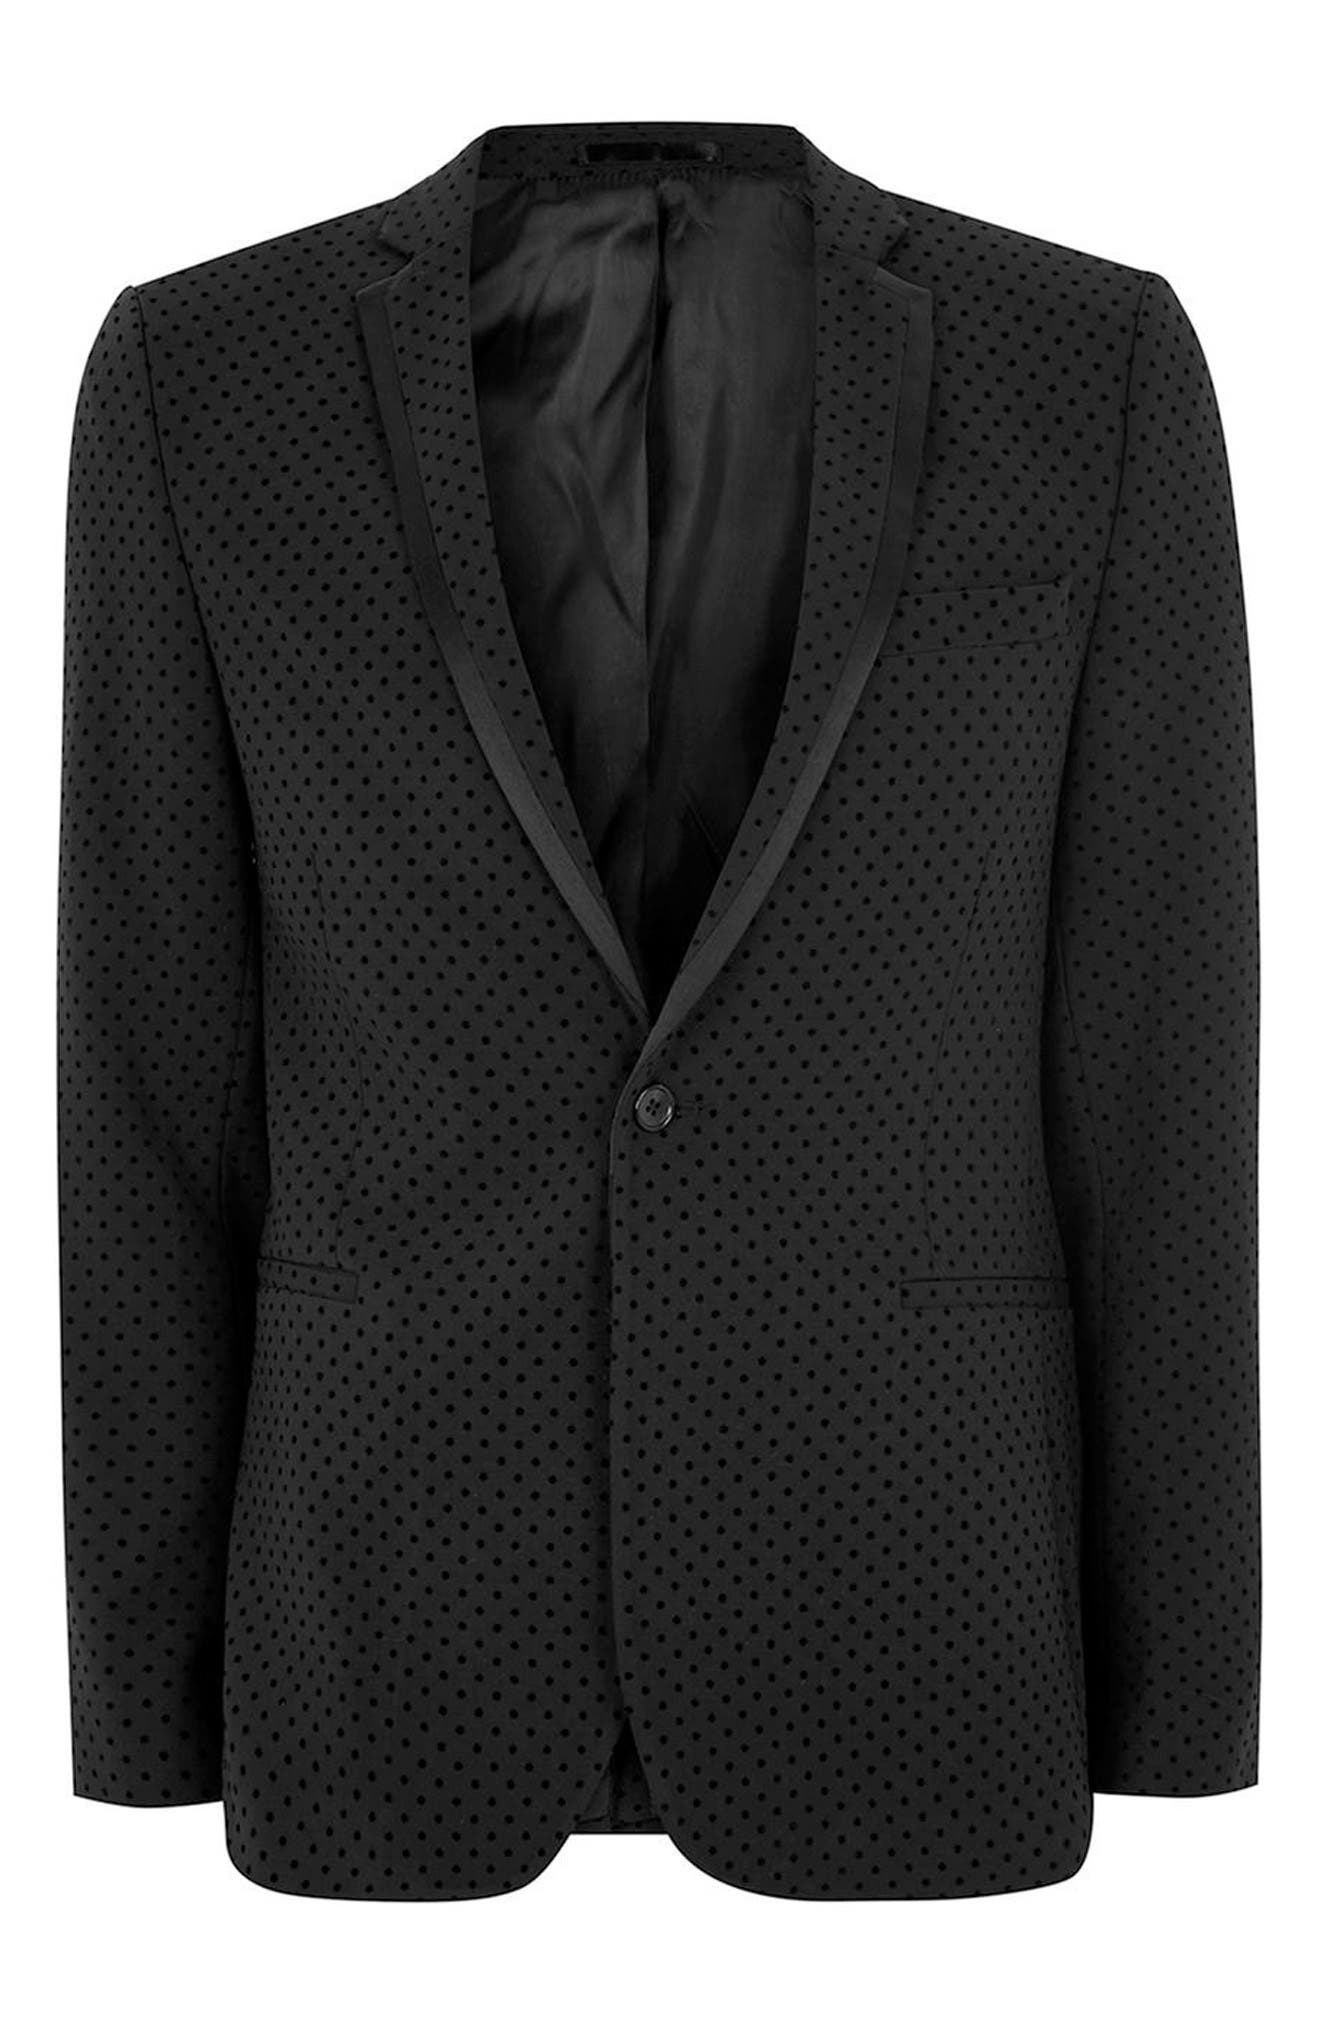 Dotted Ultra Skinny Fit Suit Jacket,                             Alternate thumbnail 4, color,                             001